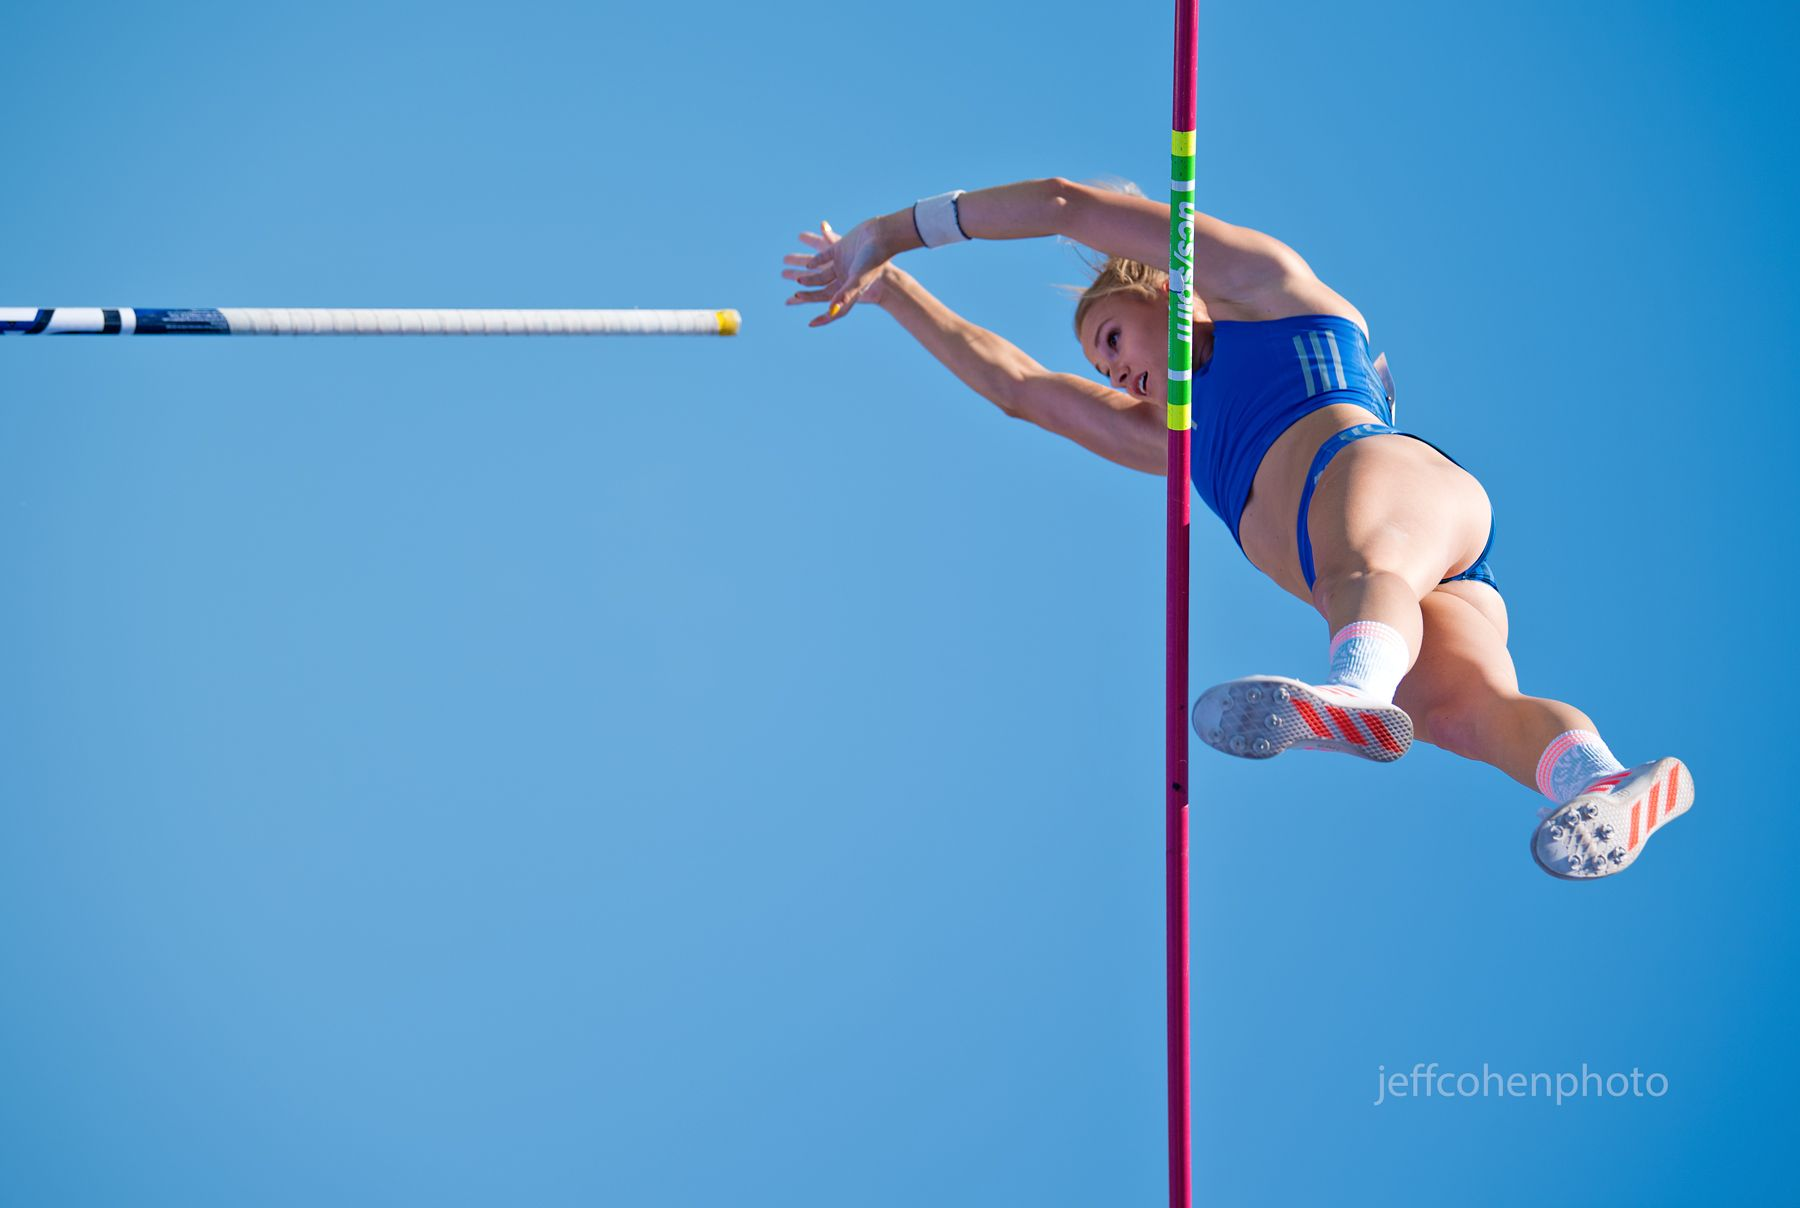 2017-usatf-outdoor-champs-day-4-nageotte-pvw-2--jeff-cohen-photo--1312-web.jpg